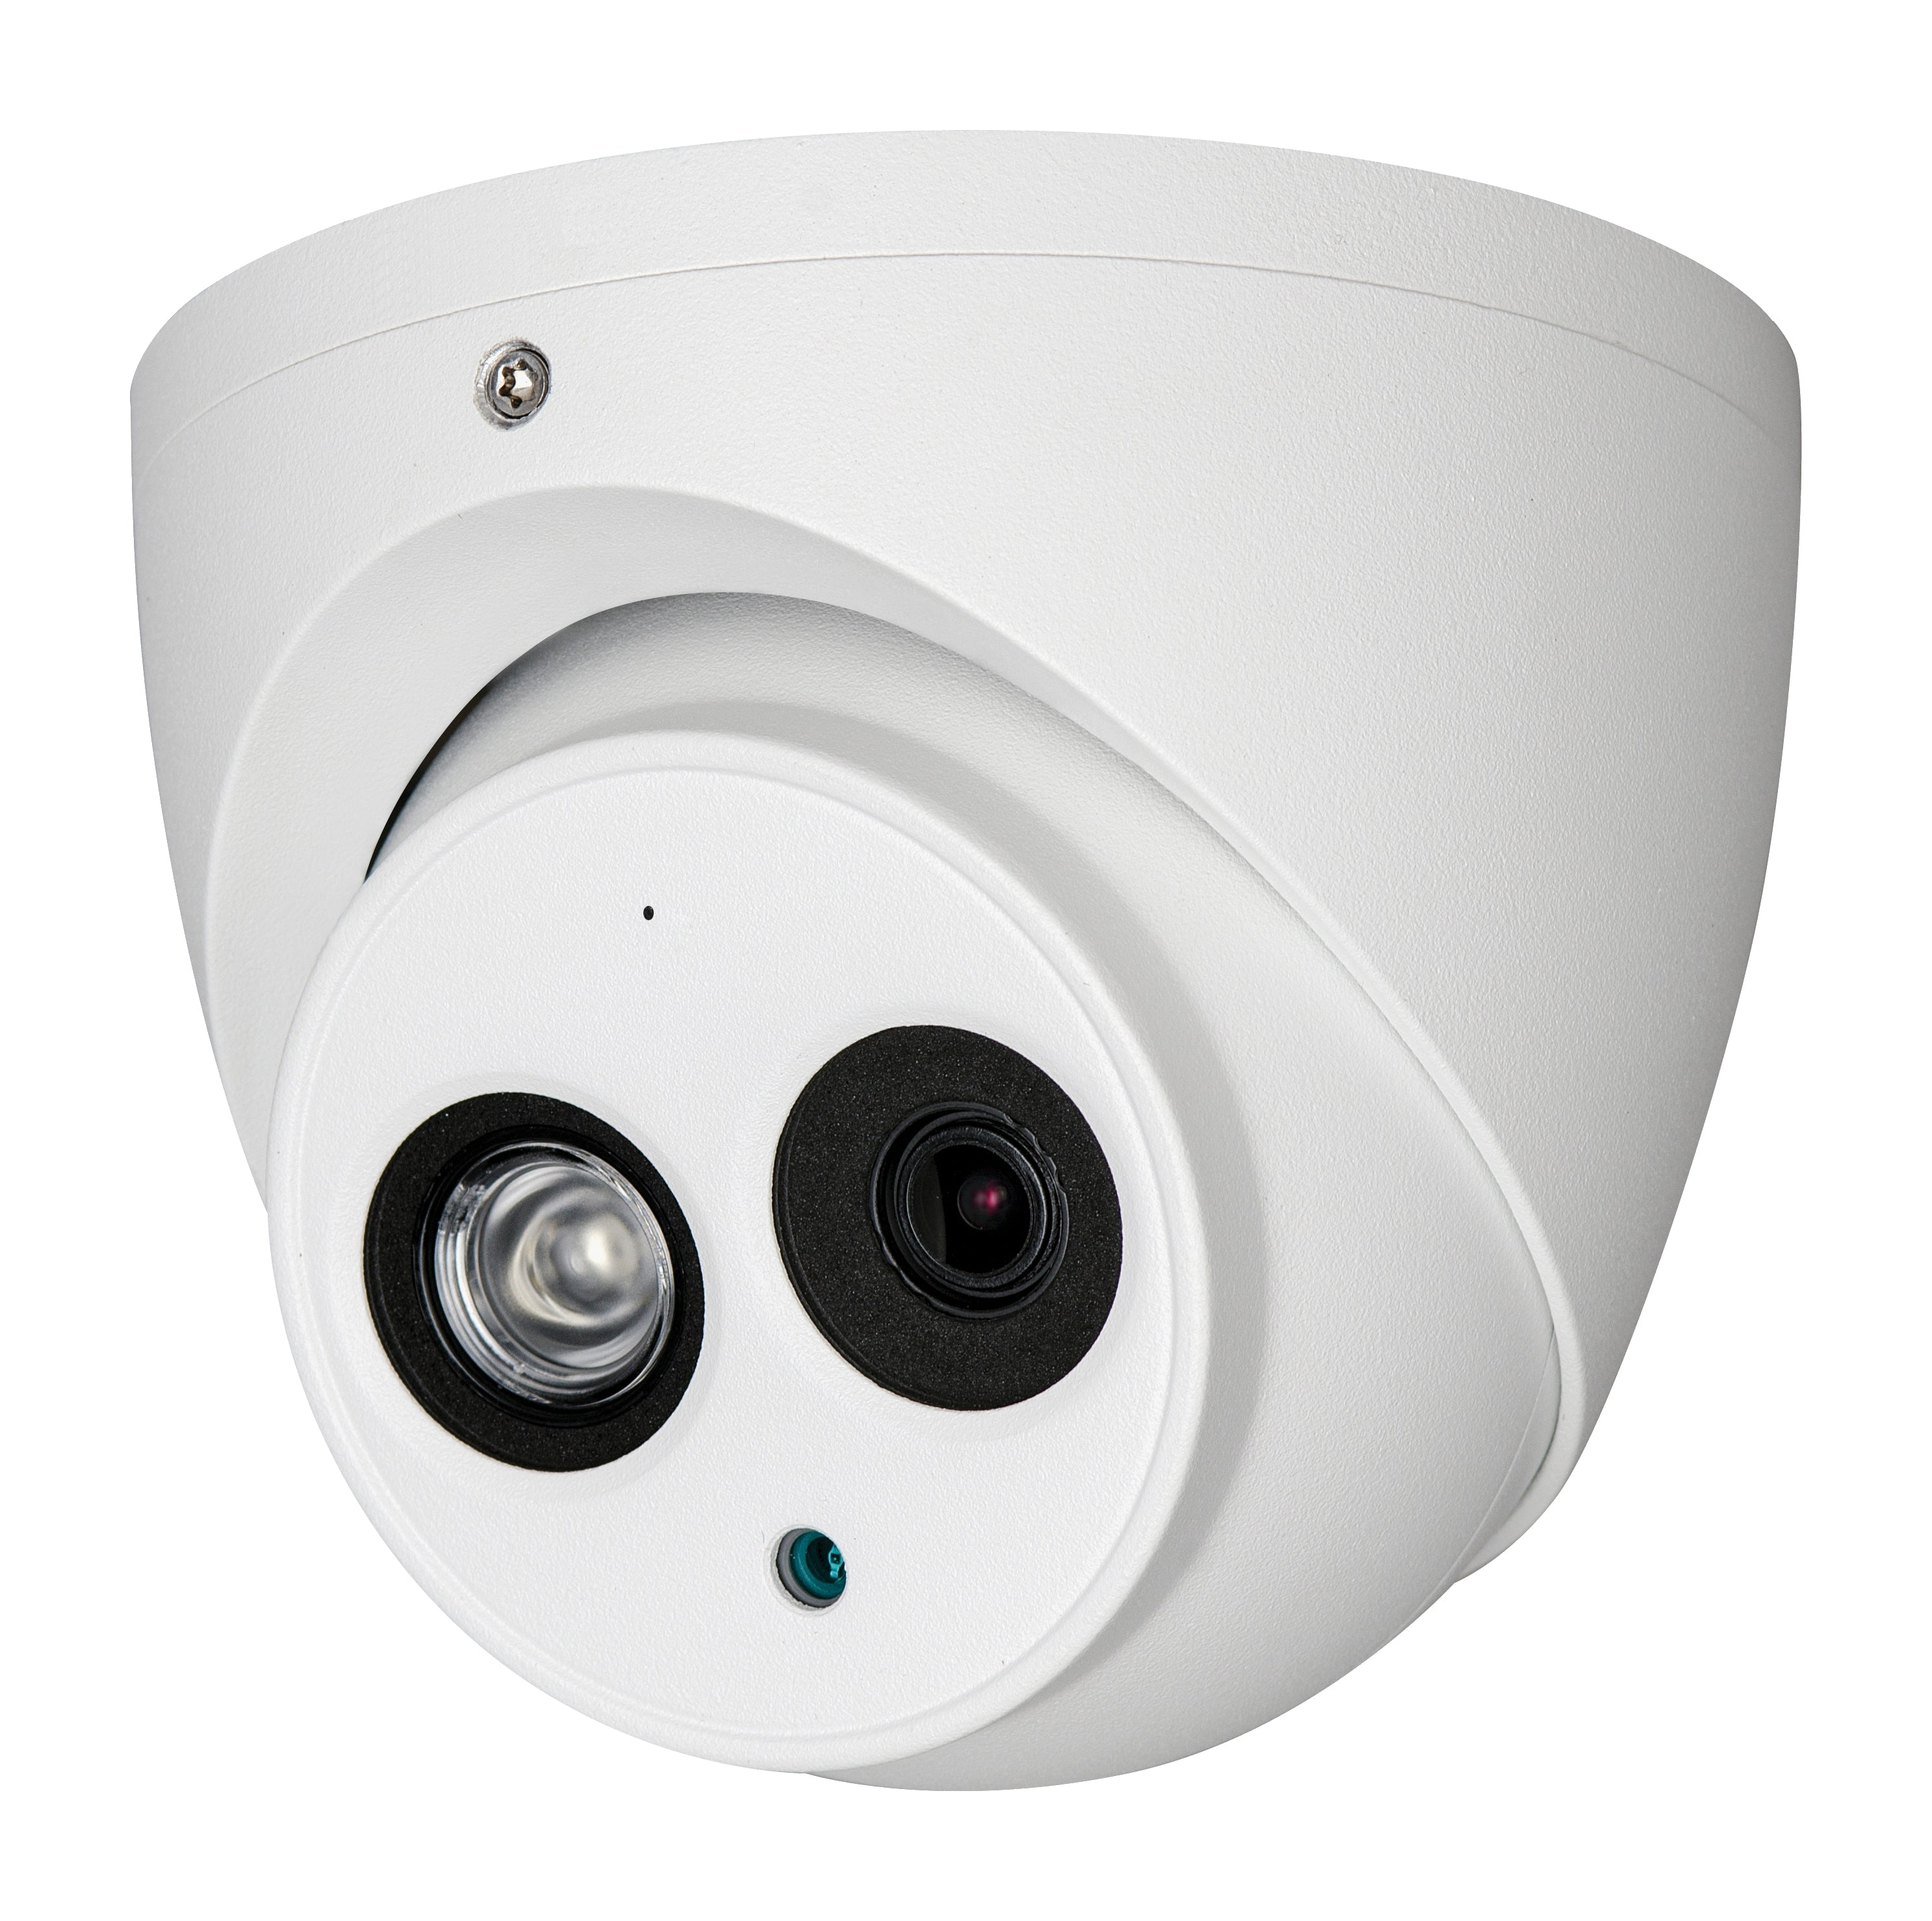 23-4D48A31EM-AS 4K WDR IR Eyeball Face Detection Network Camera with Built-in MicroSD Card Slot & Mic